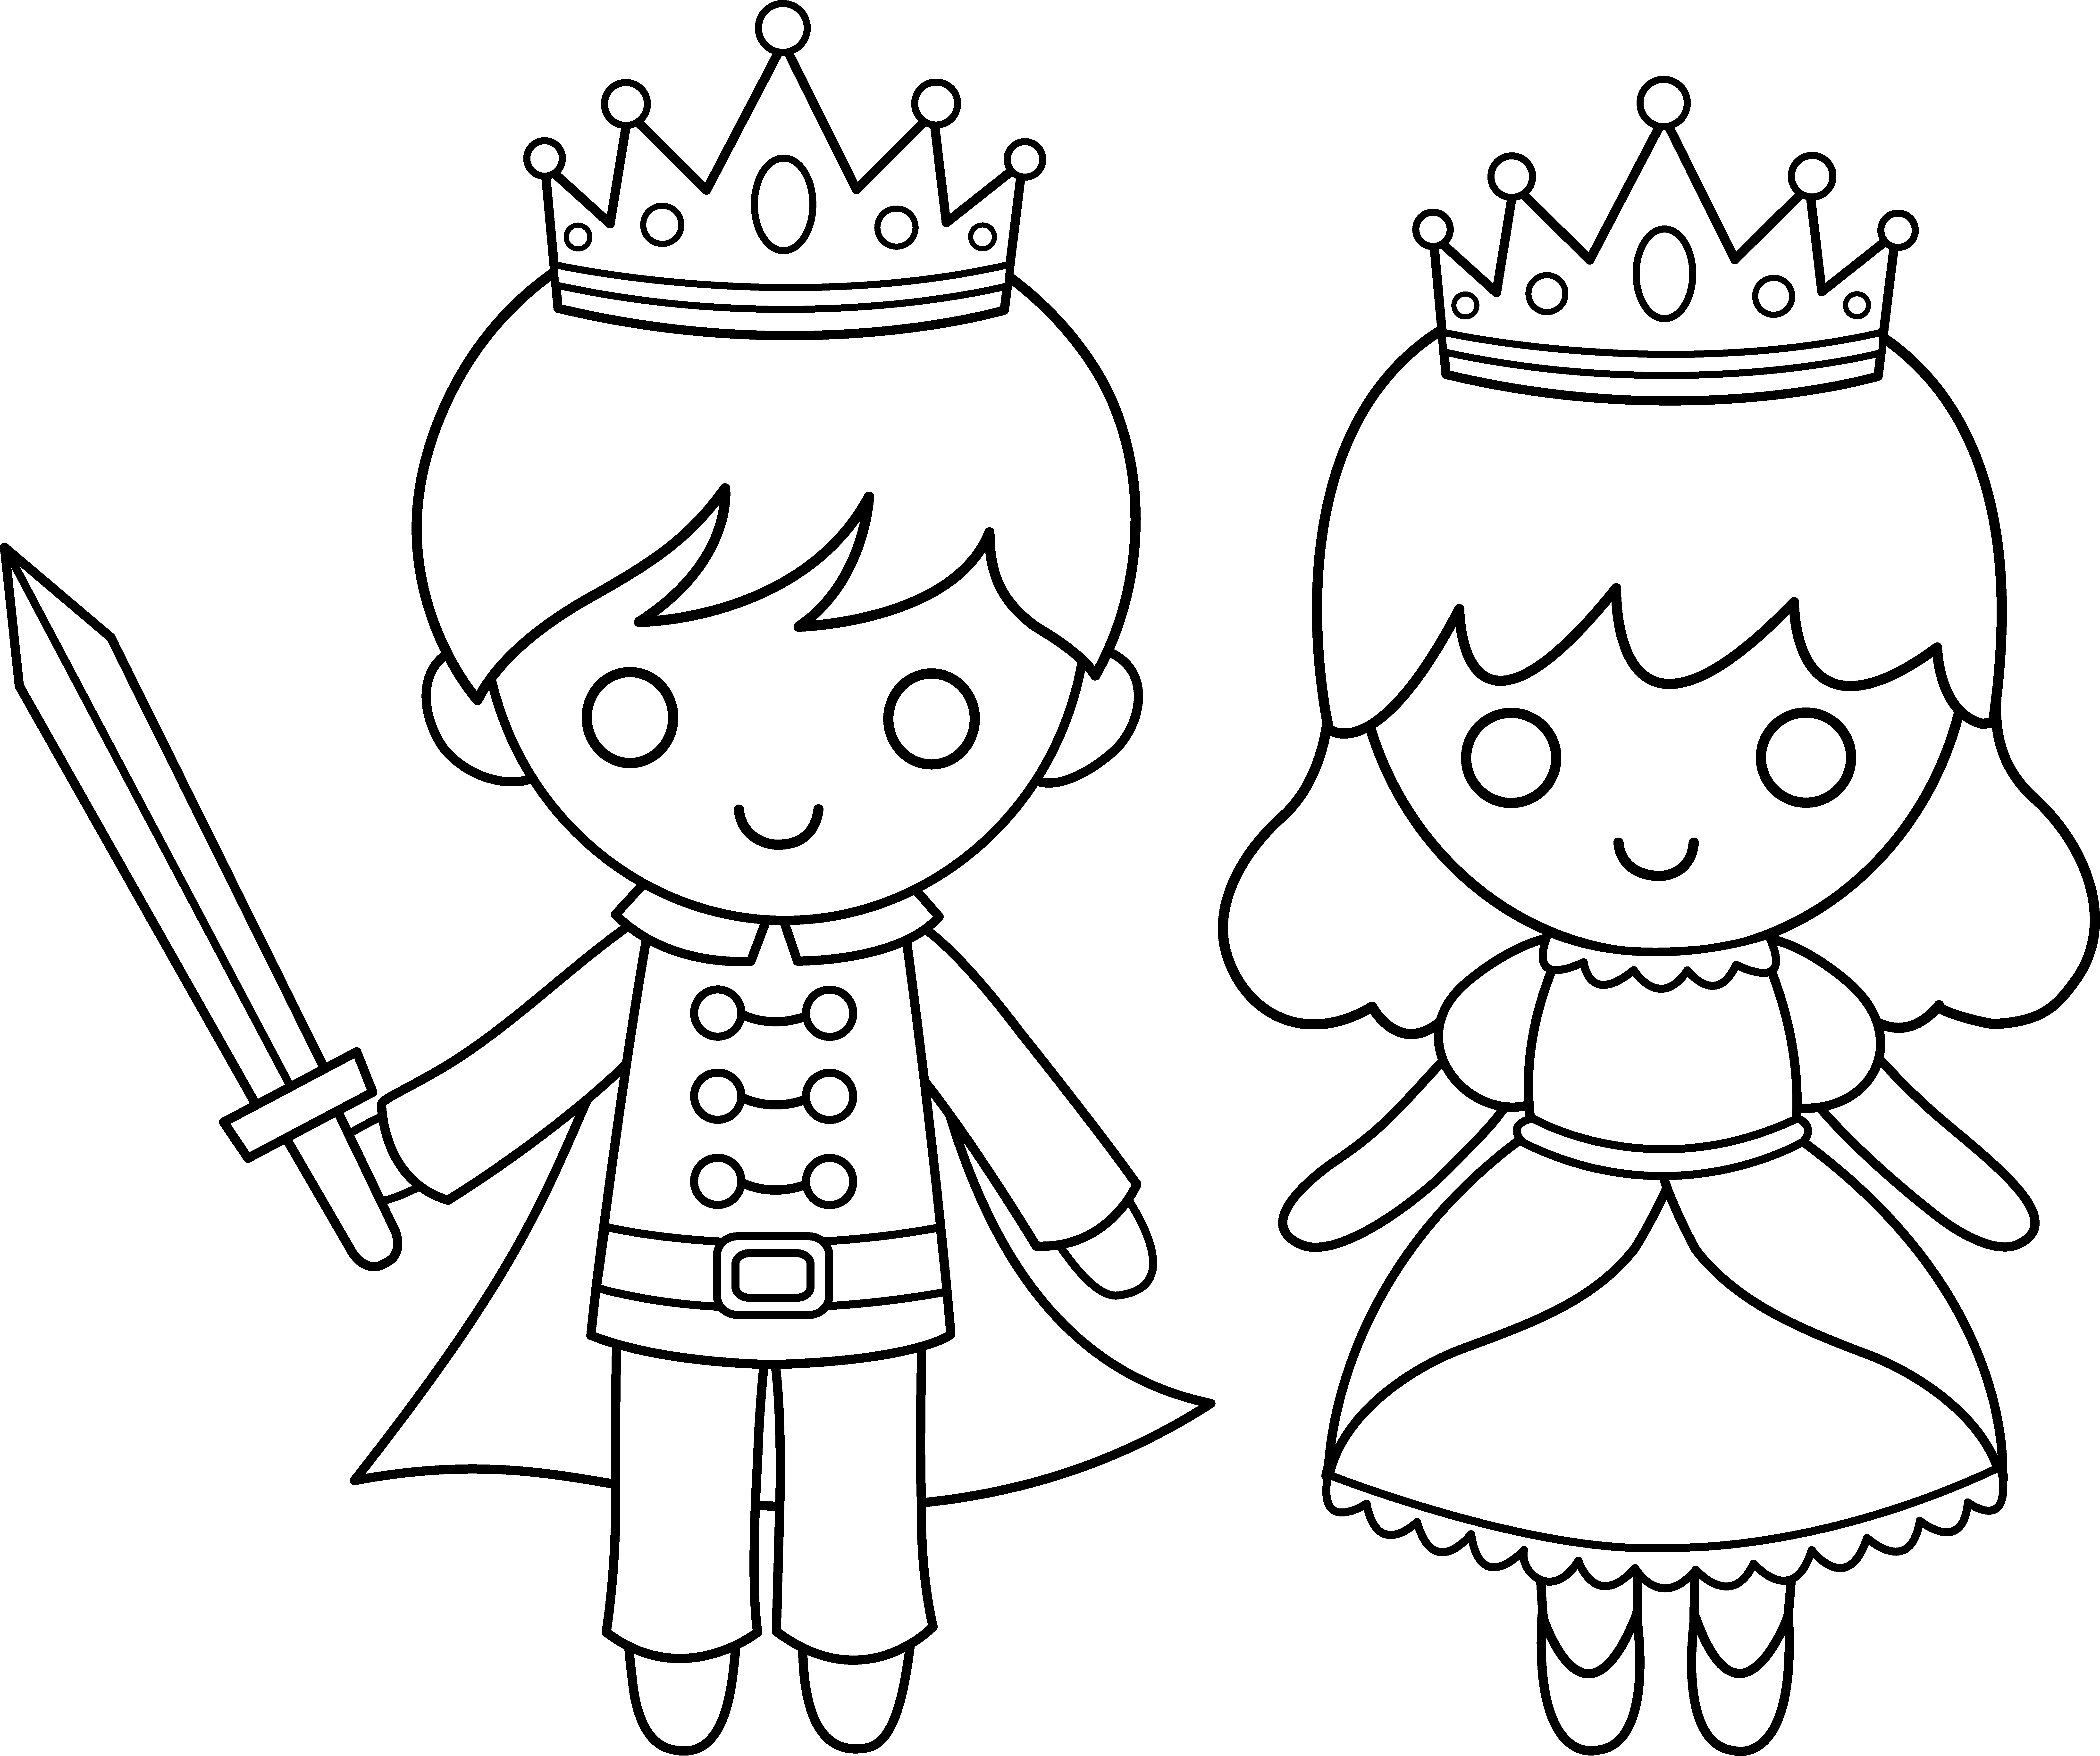 Black and white baby boy with crown clipart image royalty free library 28+ Collection of Prince Clipart Black And White | High quality ... image royalty free library